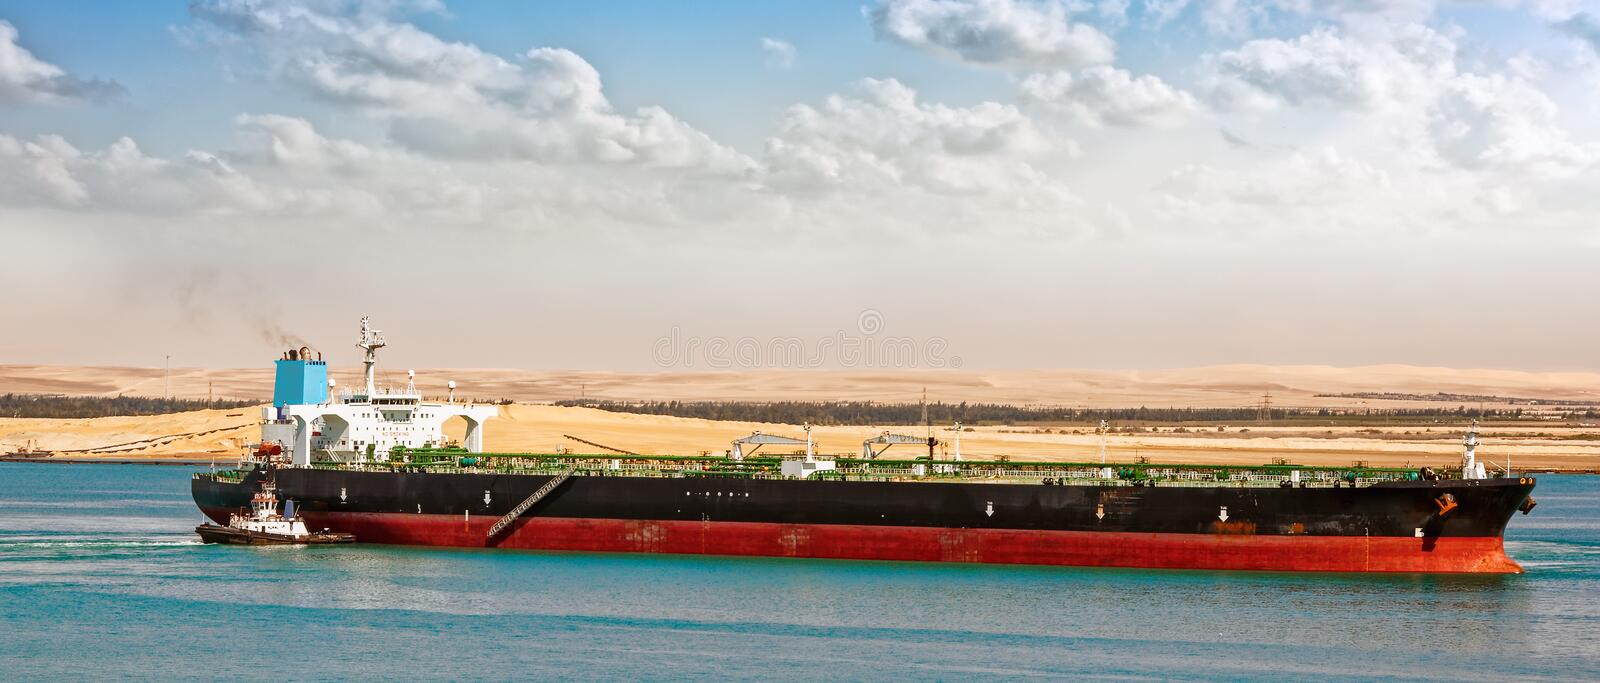 Tugboat assisting supertanker. Tugboat tugs help turn around a large oil tanker. Egypt Suez canal northbound stock images